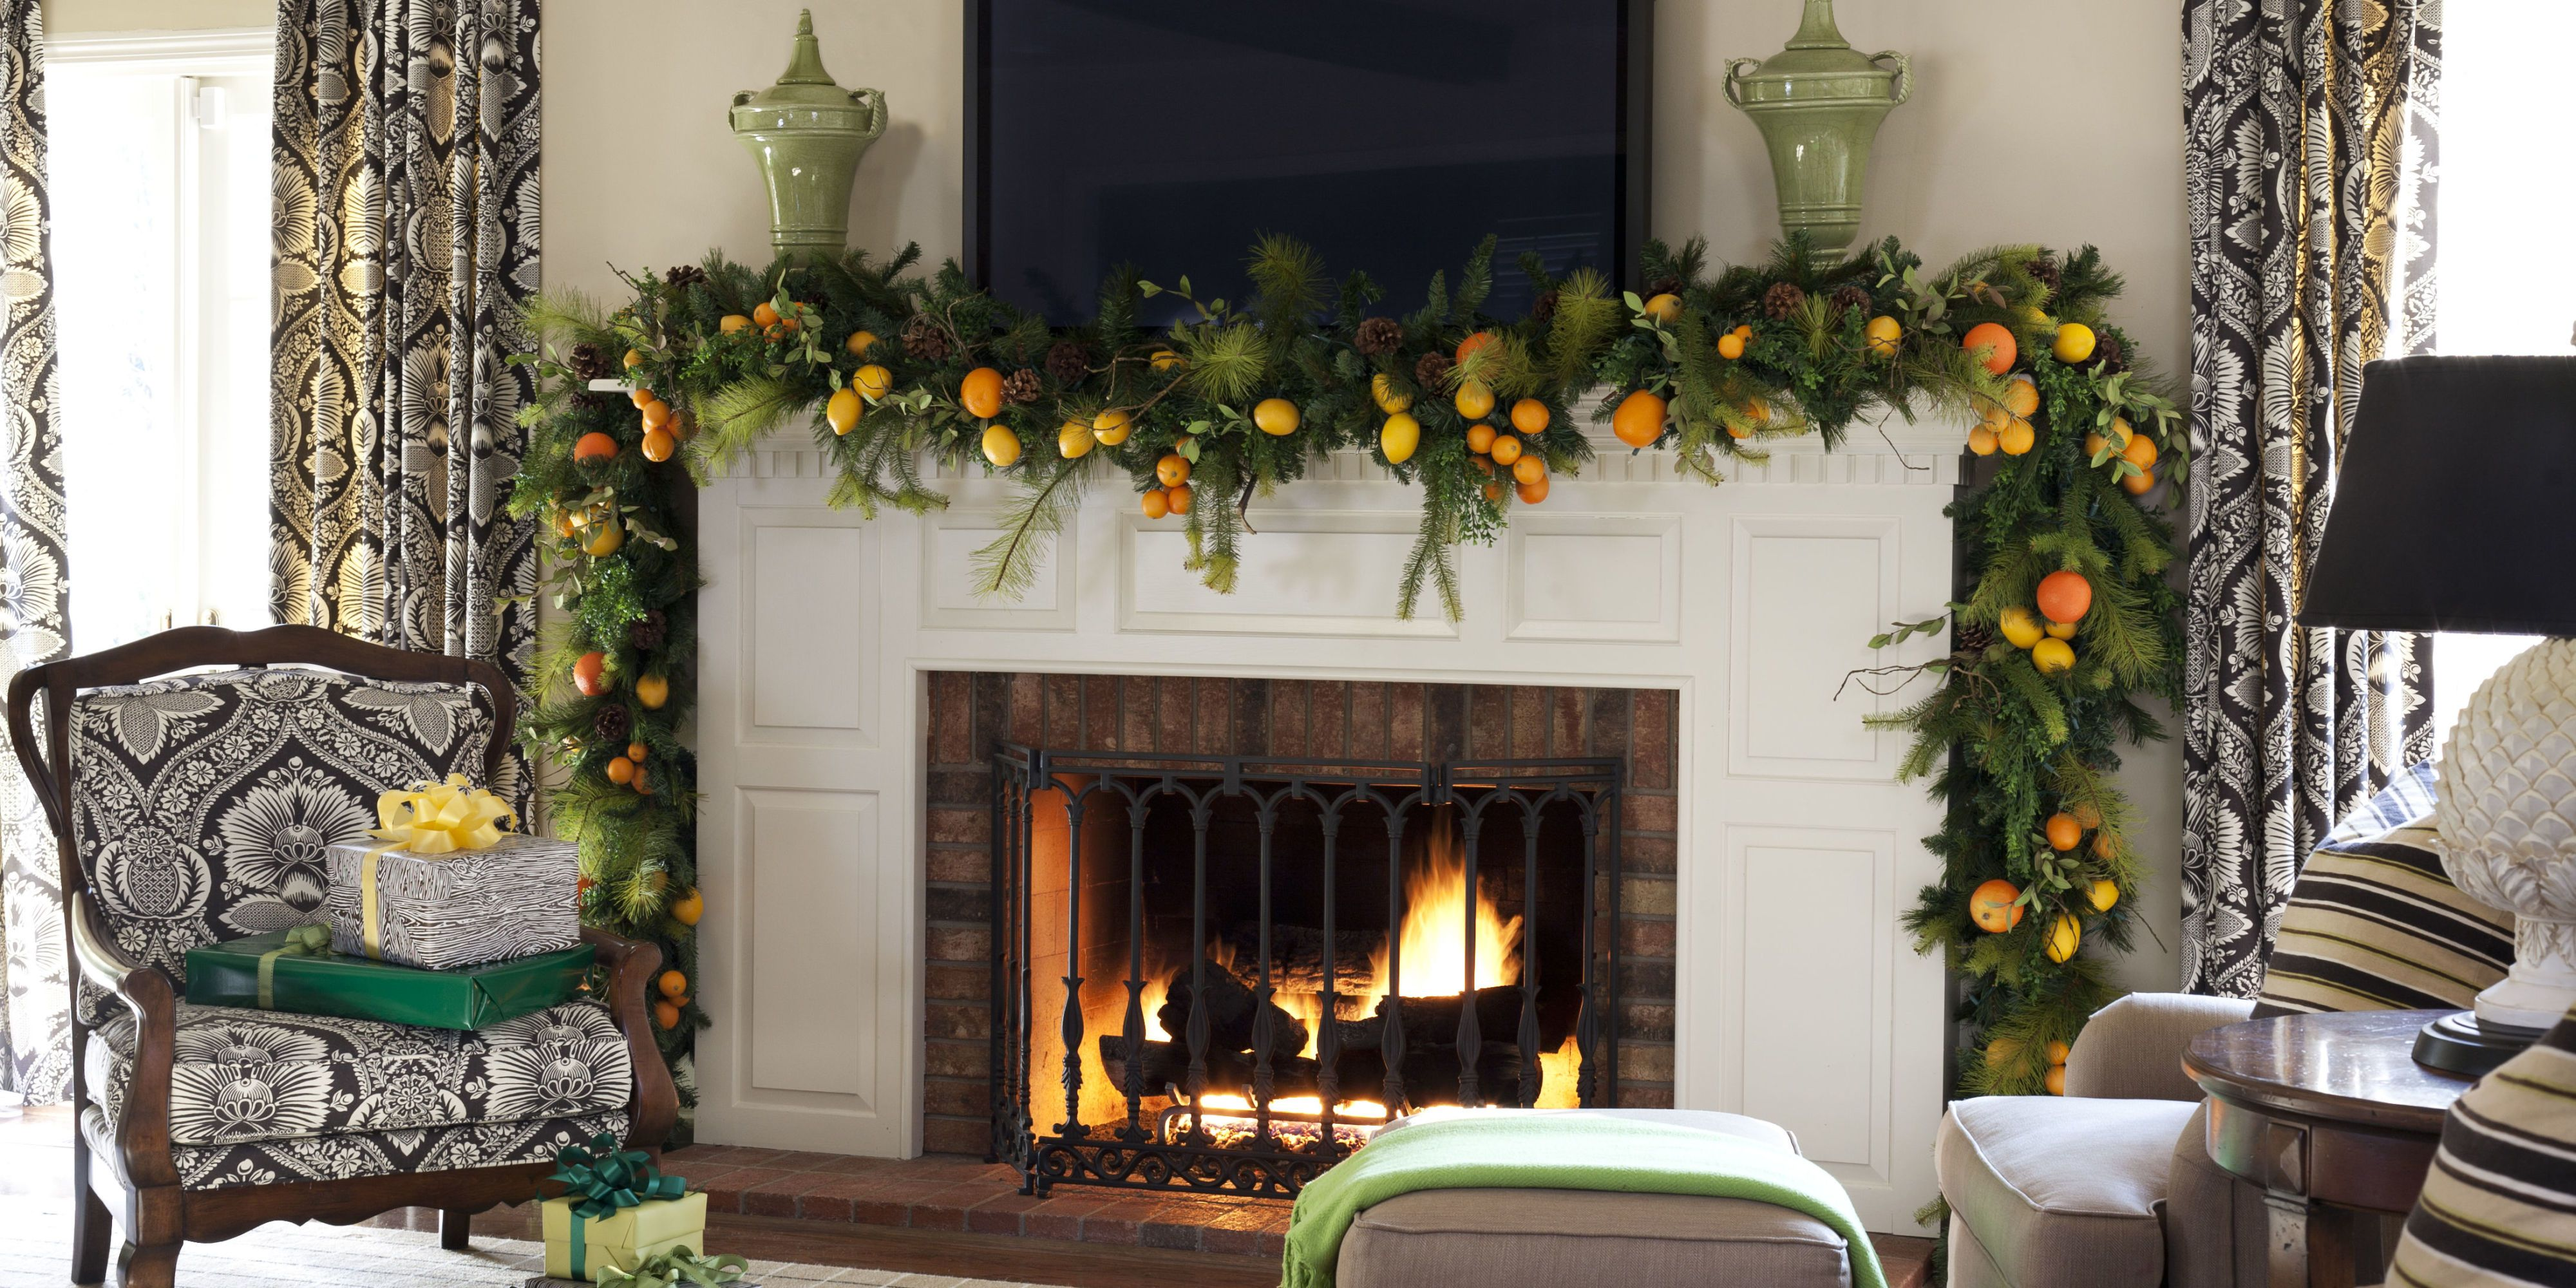 Good These Tips And Tricks Will Transform Your Homeu0027s Holiday Aesthetic.